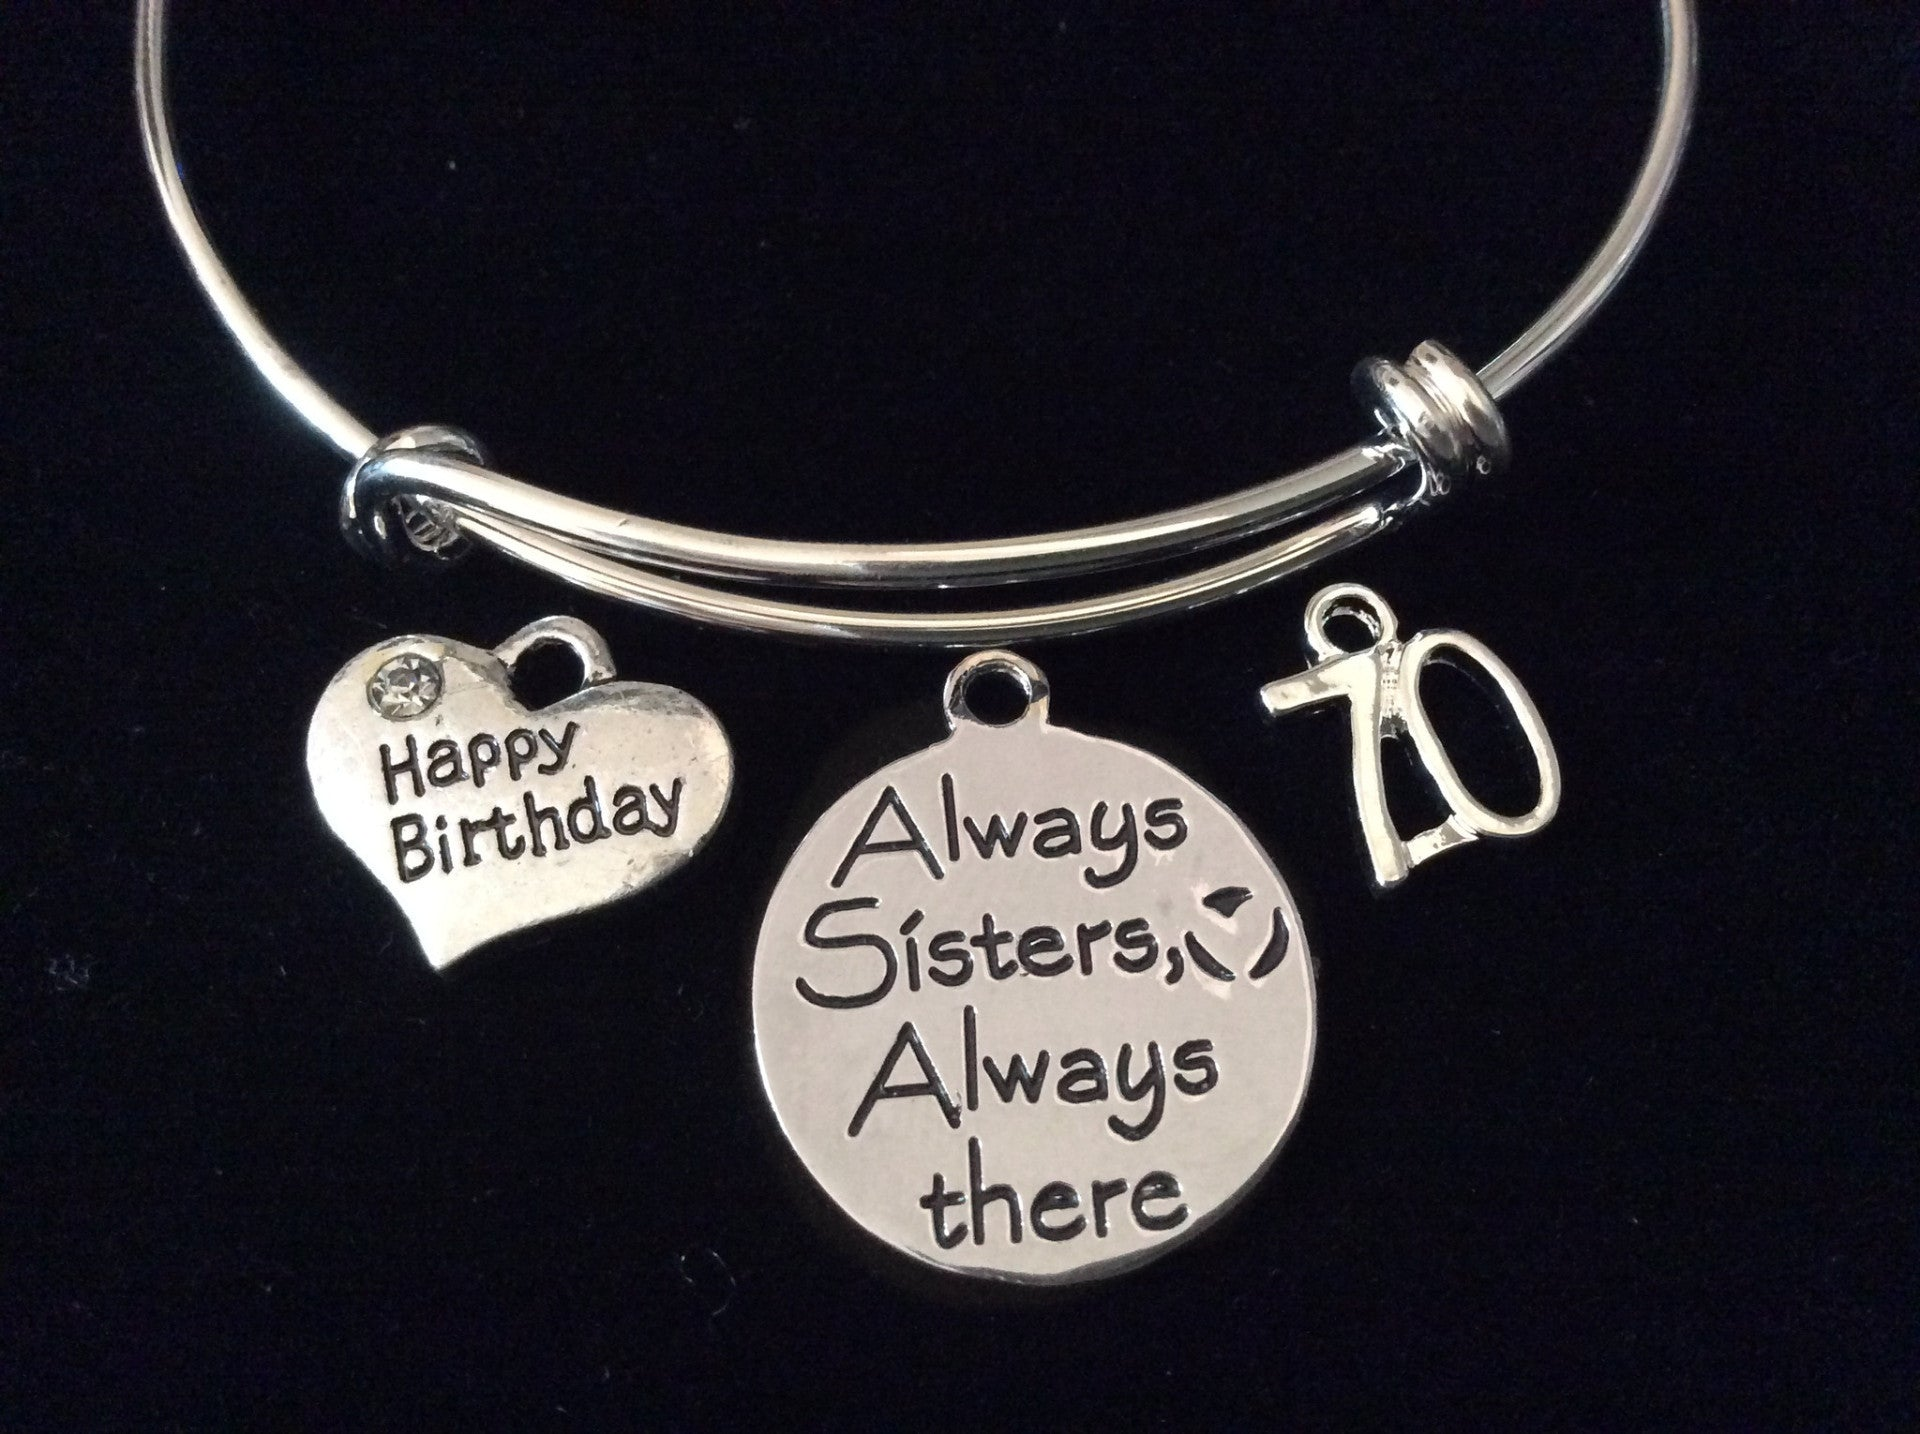 Happy 70th Birthday Always Sisters There Expandable Silver Charm Bracelet Adjustable Bangle Family Gift